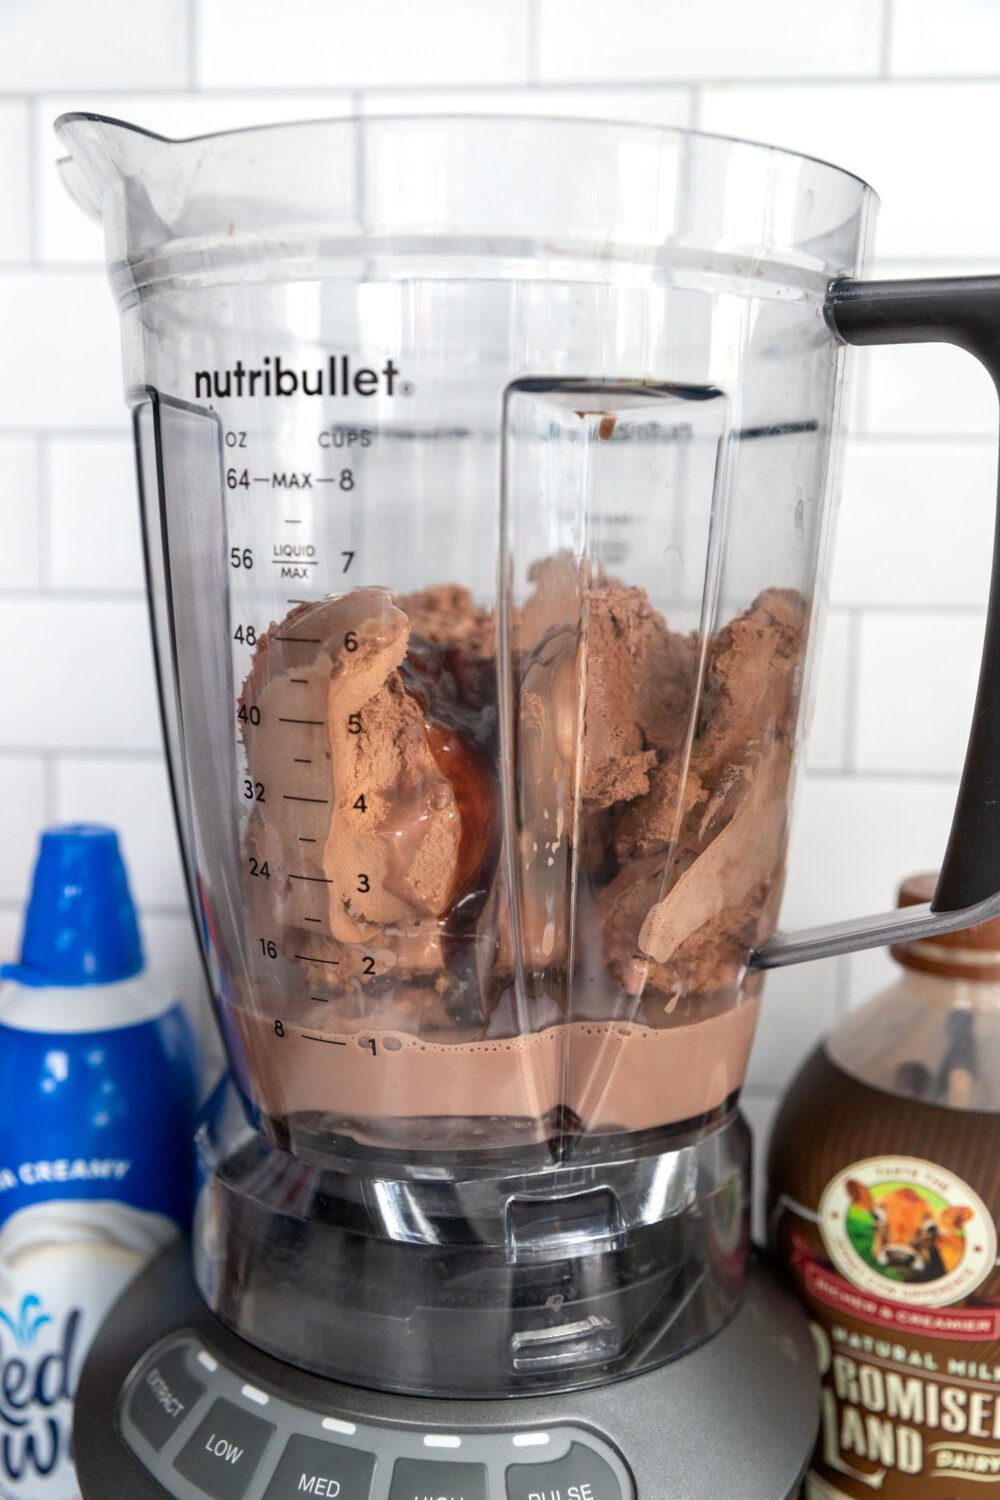 ice cream, chocolate milk and chocolate syrup in a blender